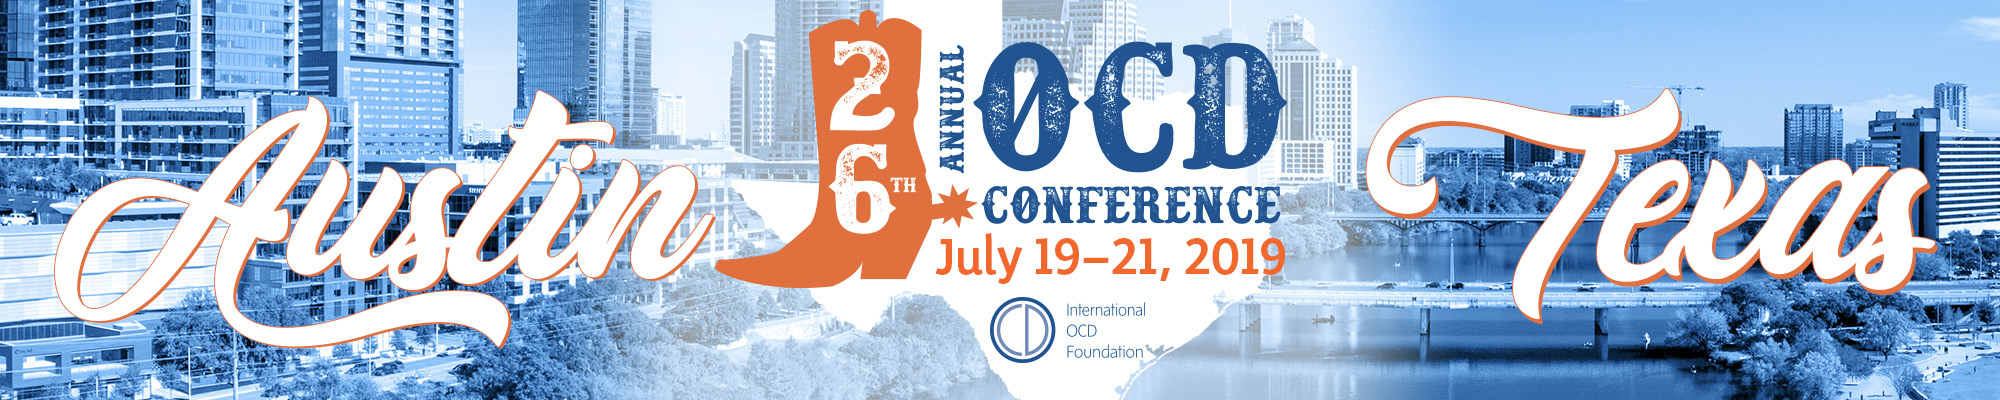 Save the Date for the 26th Annual OCD Conference. July 19-21, 2019